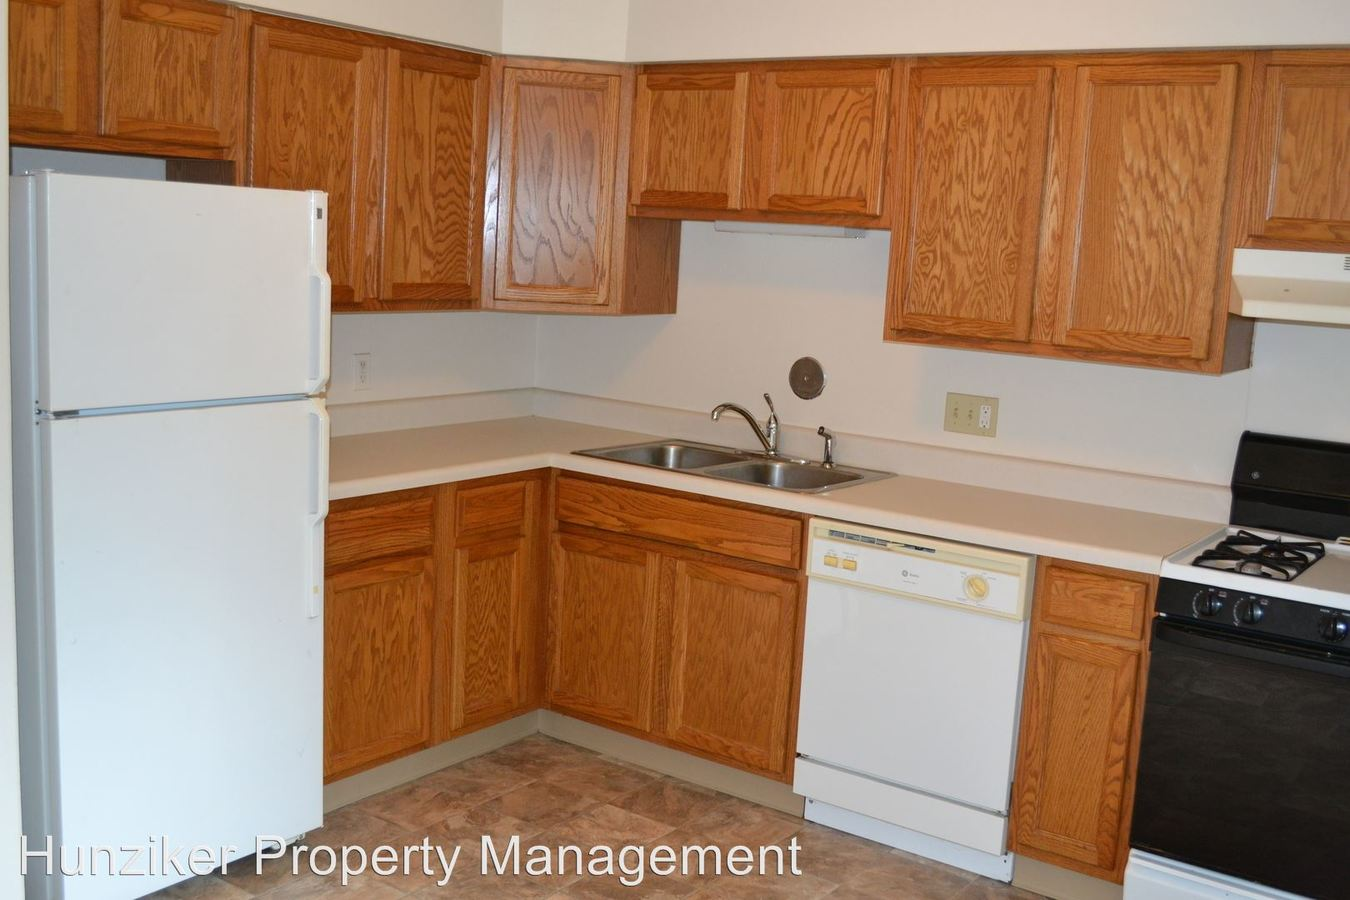 2 Bedrooms 1 Bathroom Apartment for rent at 212 S. Hyland in Ames, IA